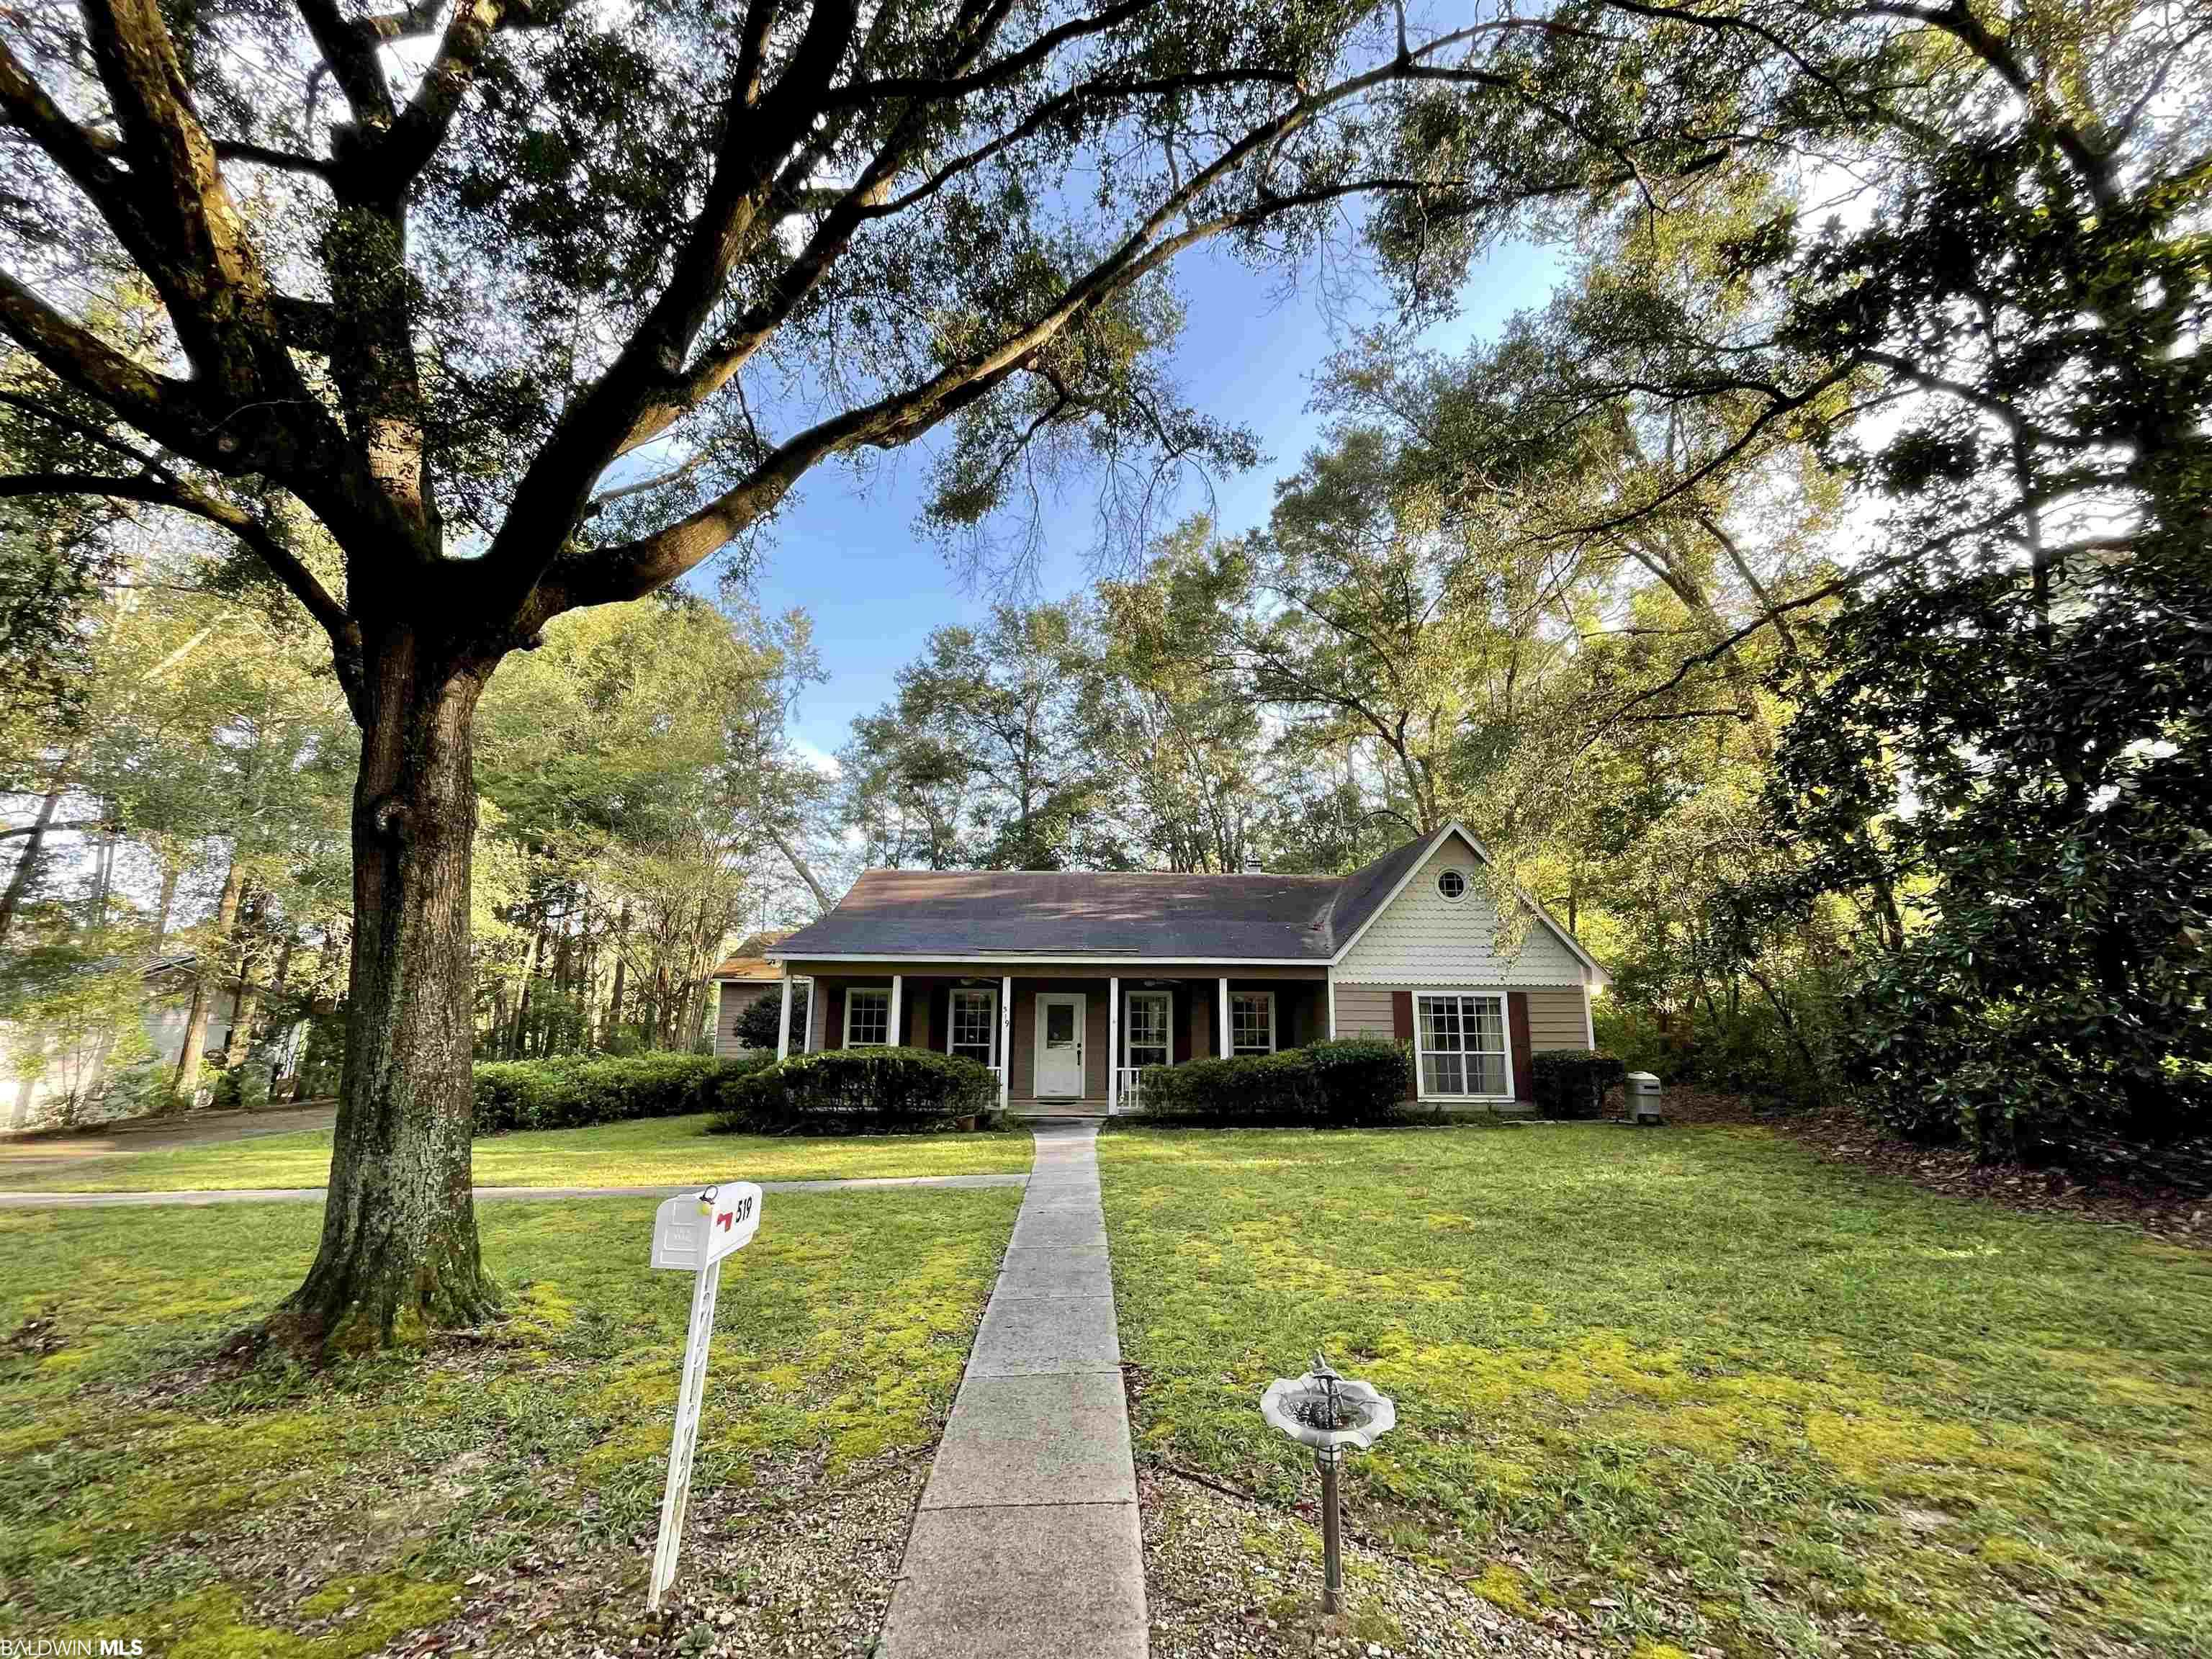 On a quiet cul-de-sac, minutes away from everything downtown Fairhope. Sits this rare find just waiting for your personal touch. This property features over 2,200 sq. ft., a double garage, and 10 foot ceilings throughout. Take a short walk to sunsets on Mobile Bay or dinner at sunset point, just a block away. Enjoy quiet mornings on the wide front porch or inside in the large 22' x 13' sun room. This house has the potential to be your forever home. Schedule your showing today!